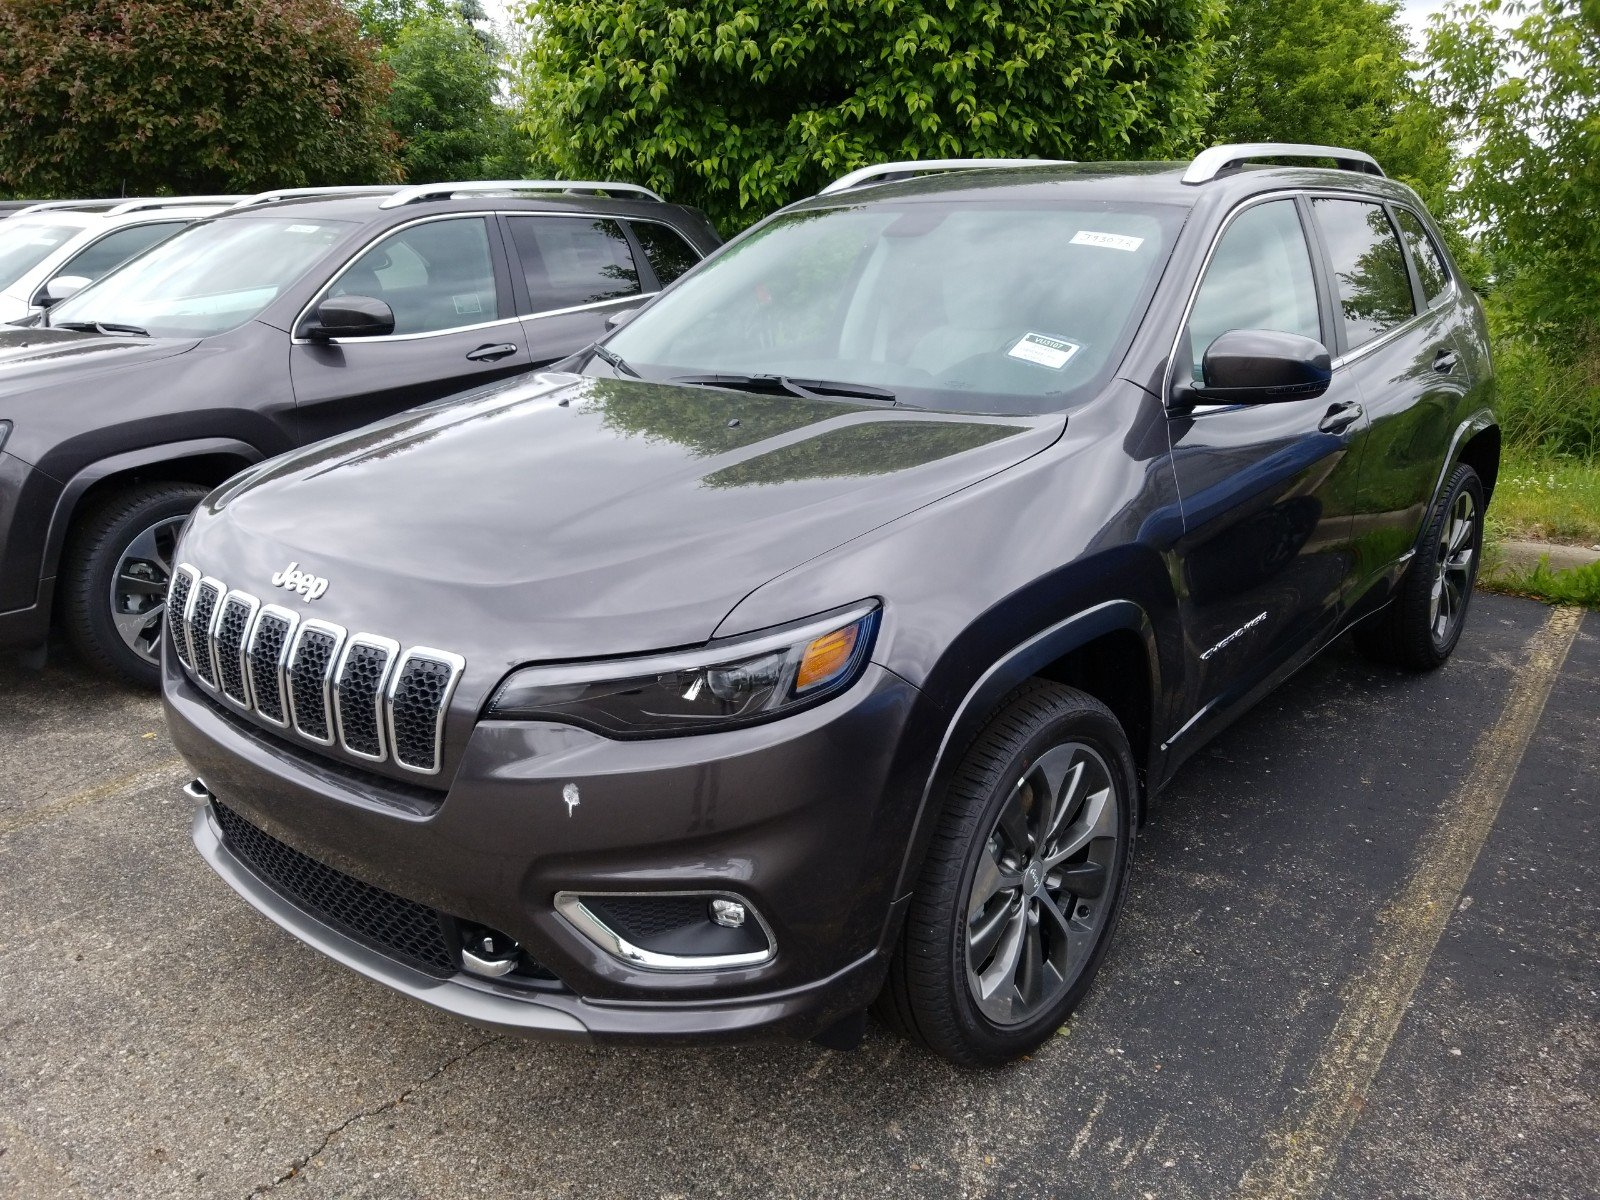 New 2019 JEEP Cherokee Overland Sport Utility in Washington J